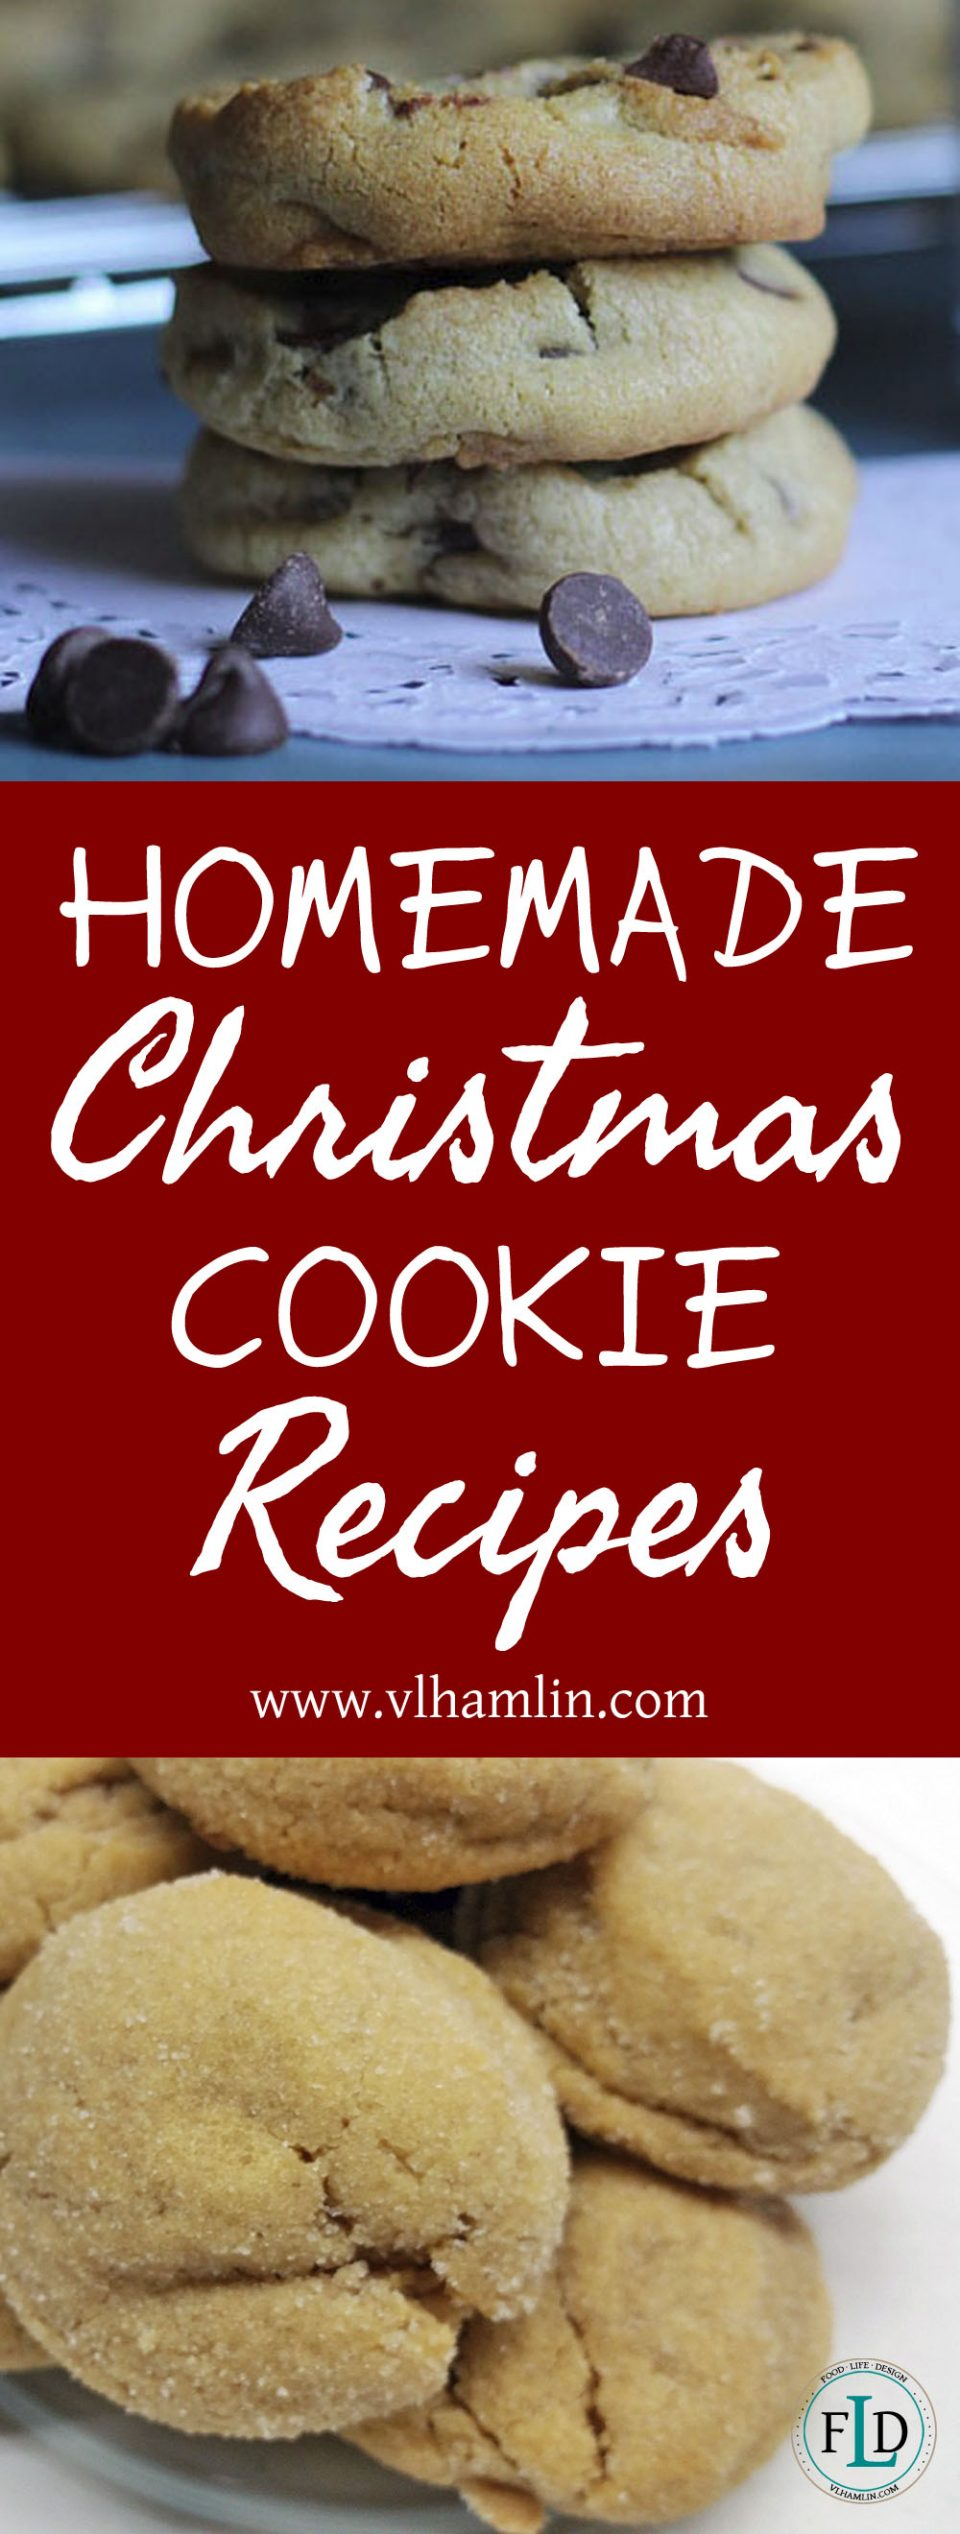 Homemade Christmas Cookie Recipes